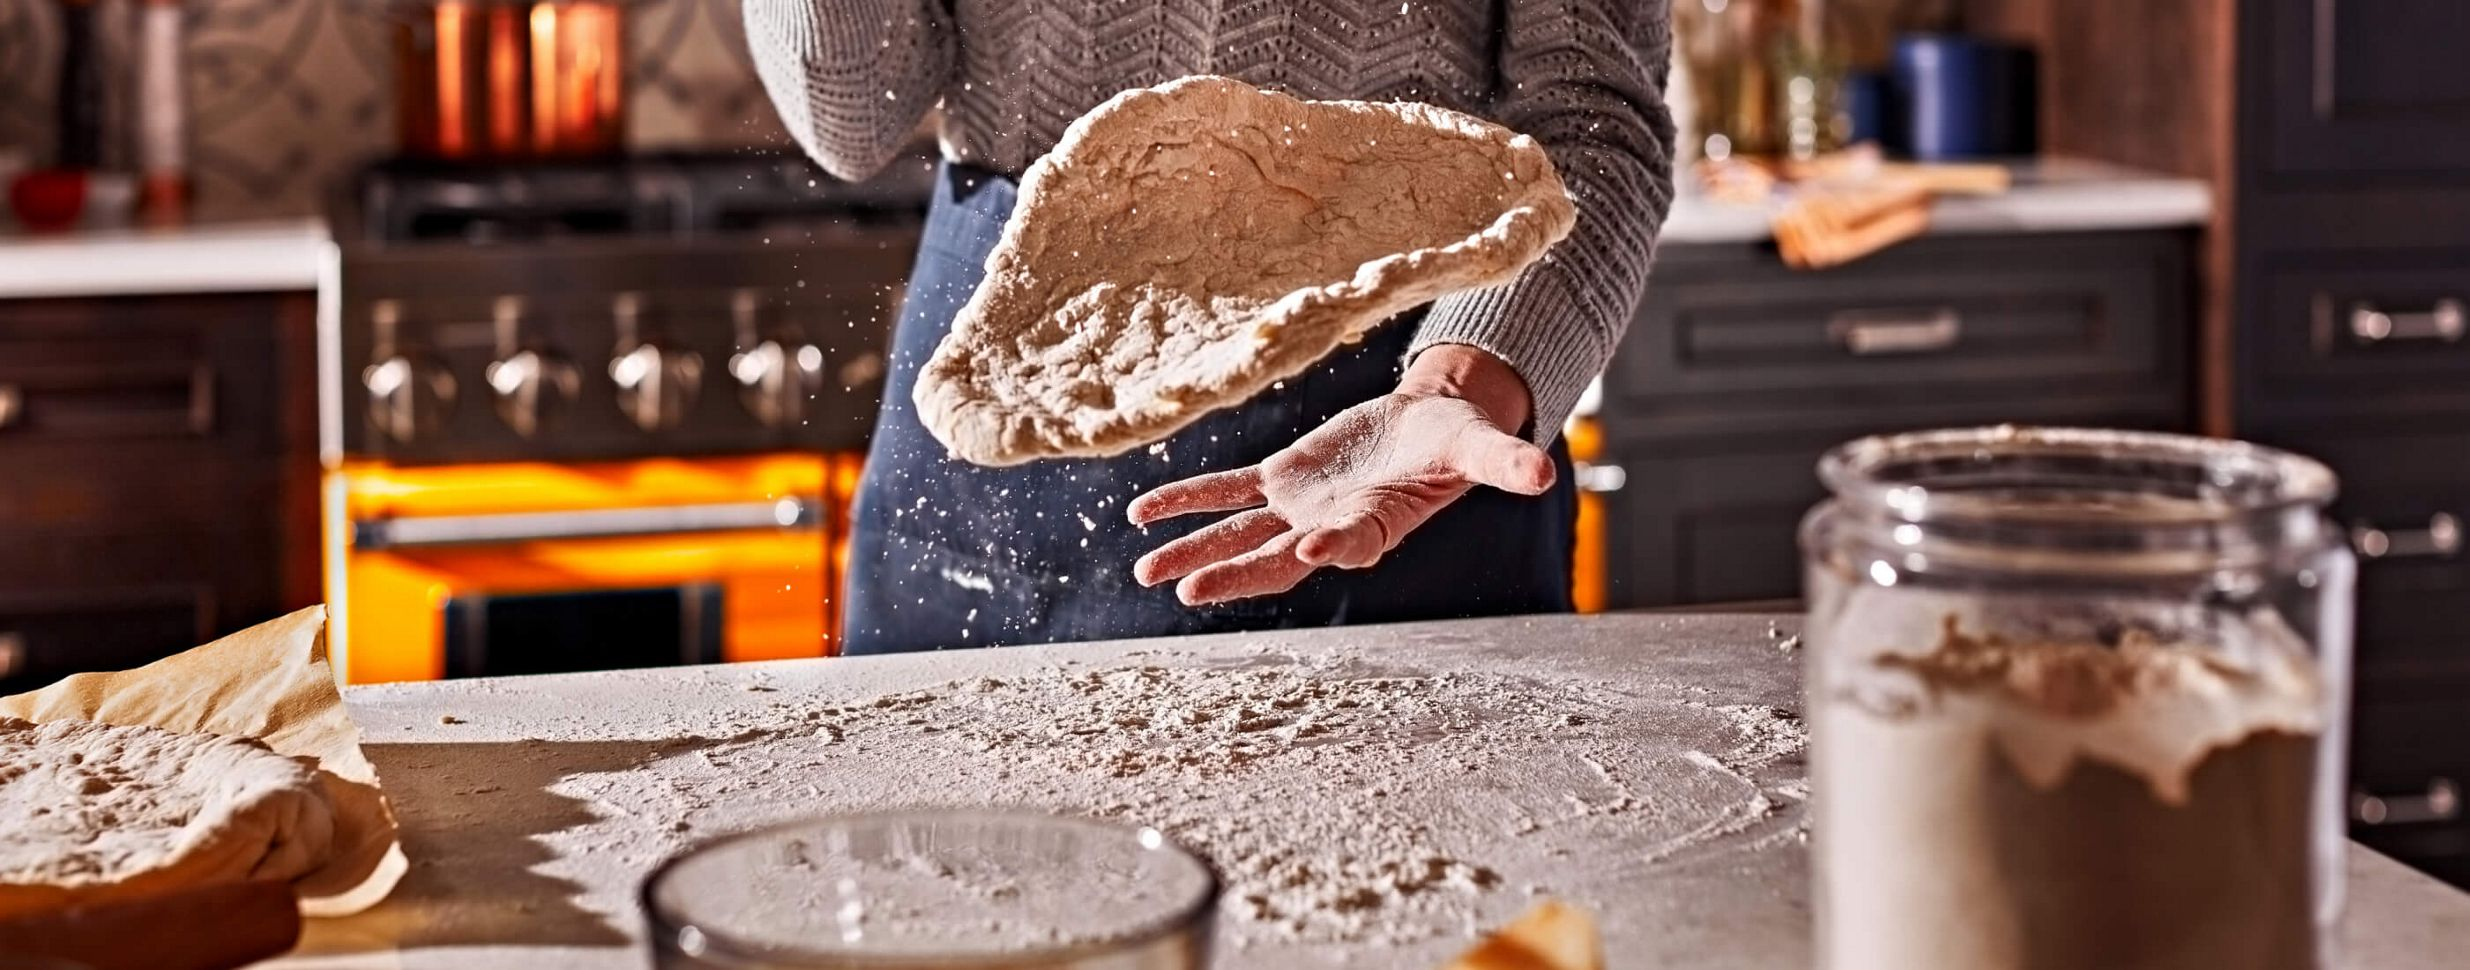 A maker expertly tossing well-floured pizza dough.